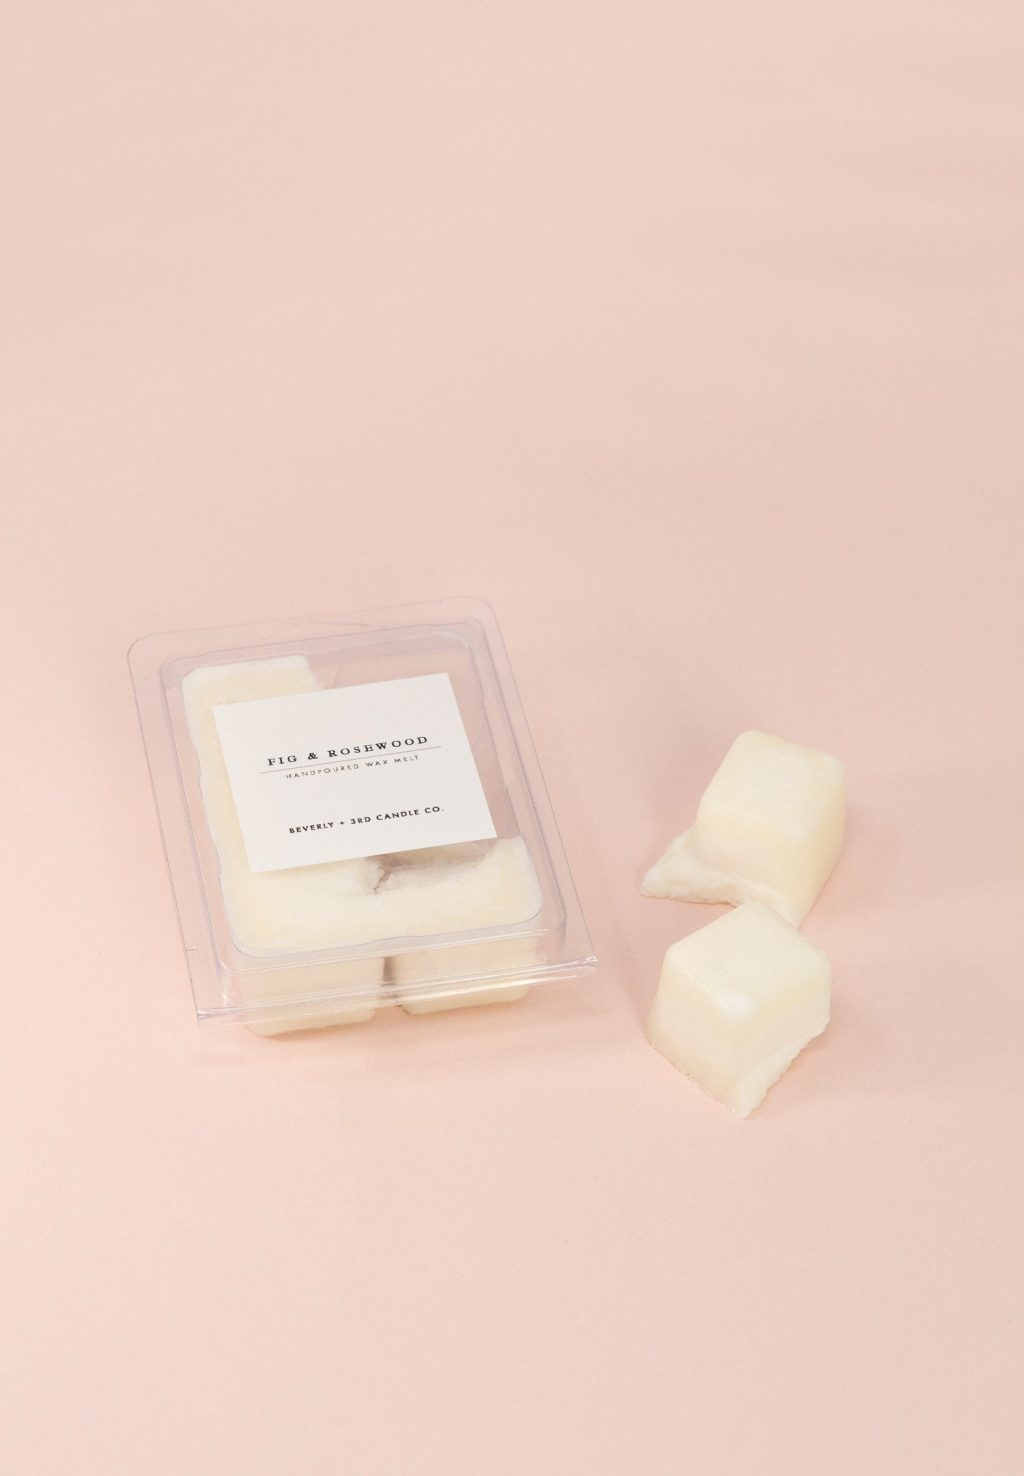 FIG & ROSEWOOD Soy Wax Melts | Scented Soy Tarts, Soy Candle Melt, Scented Wax Cubes | Wholesale, Bulk Order